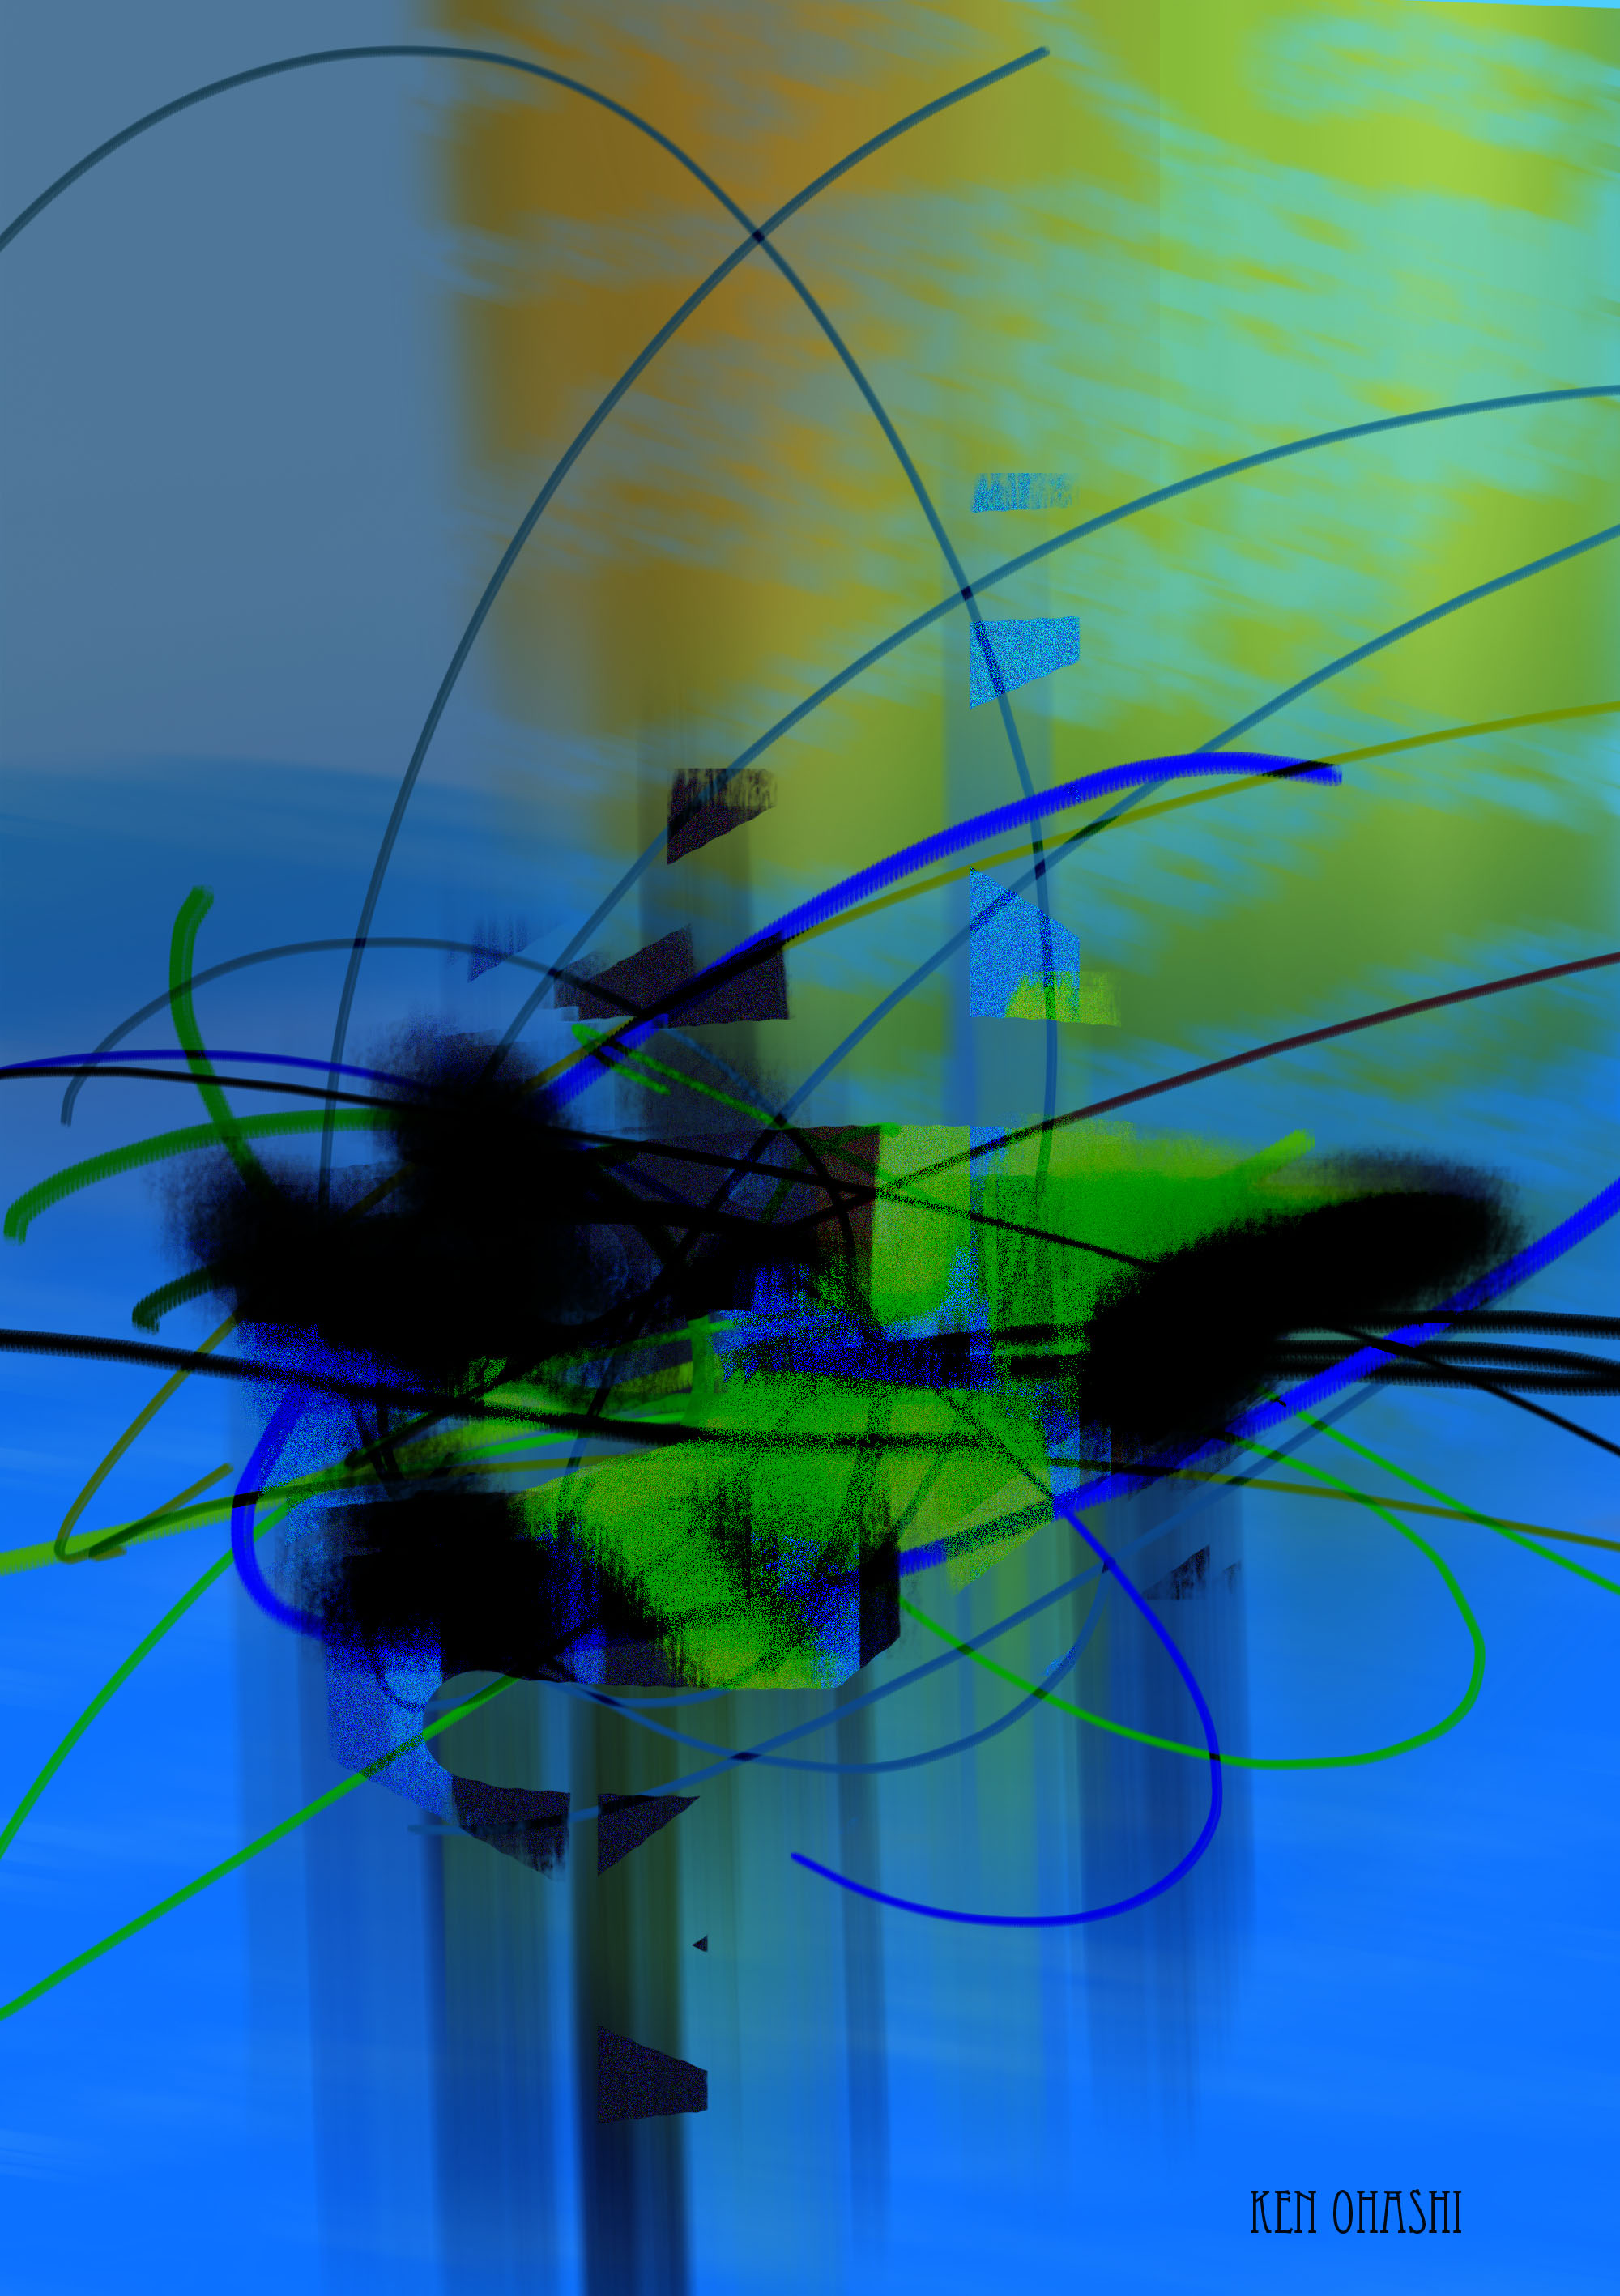 Abstraction_2010073102 のコピー